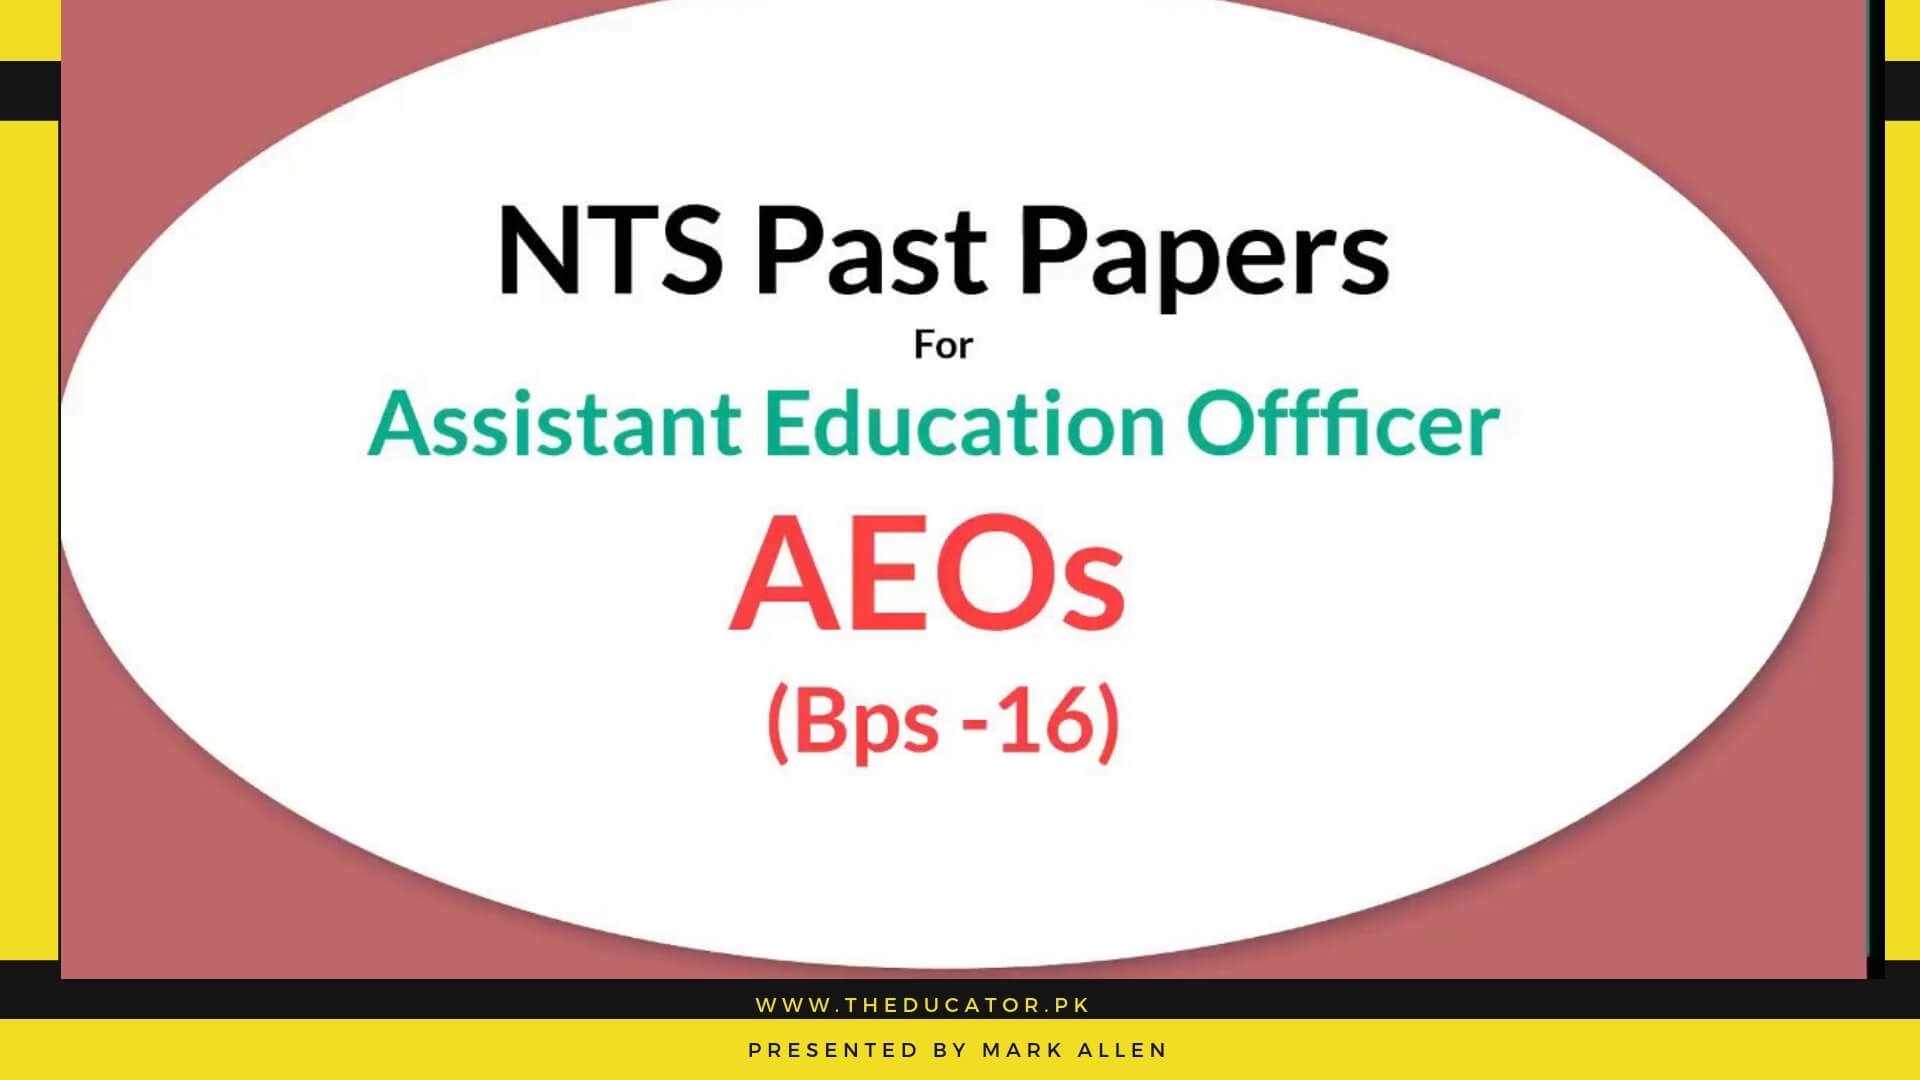 aeos past papers